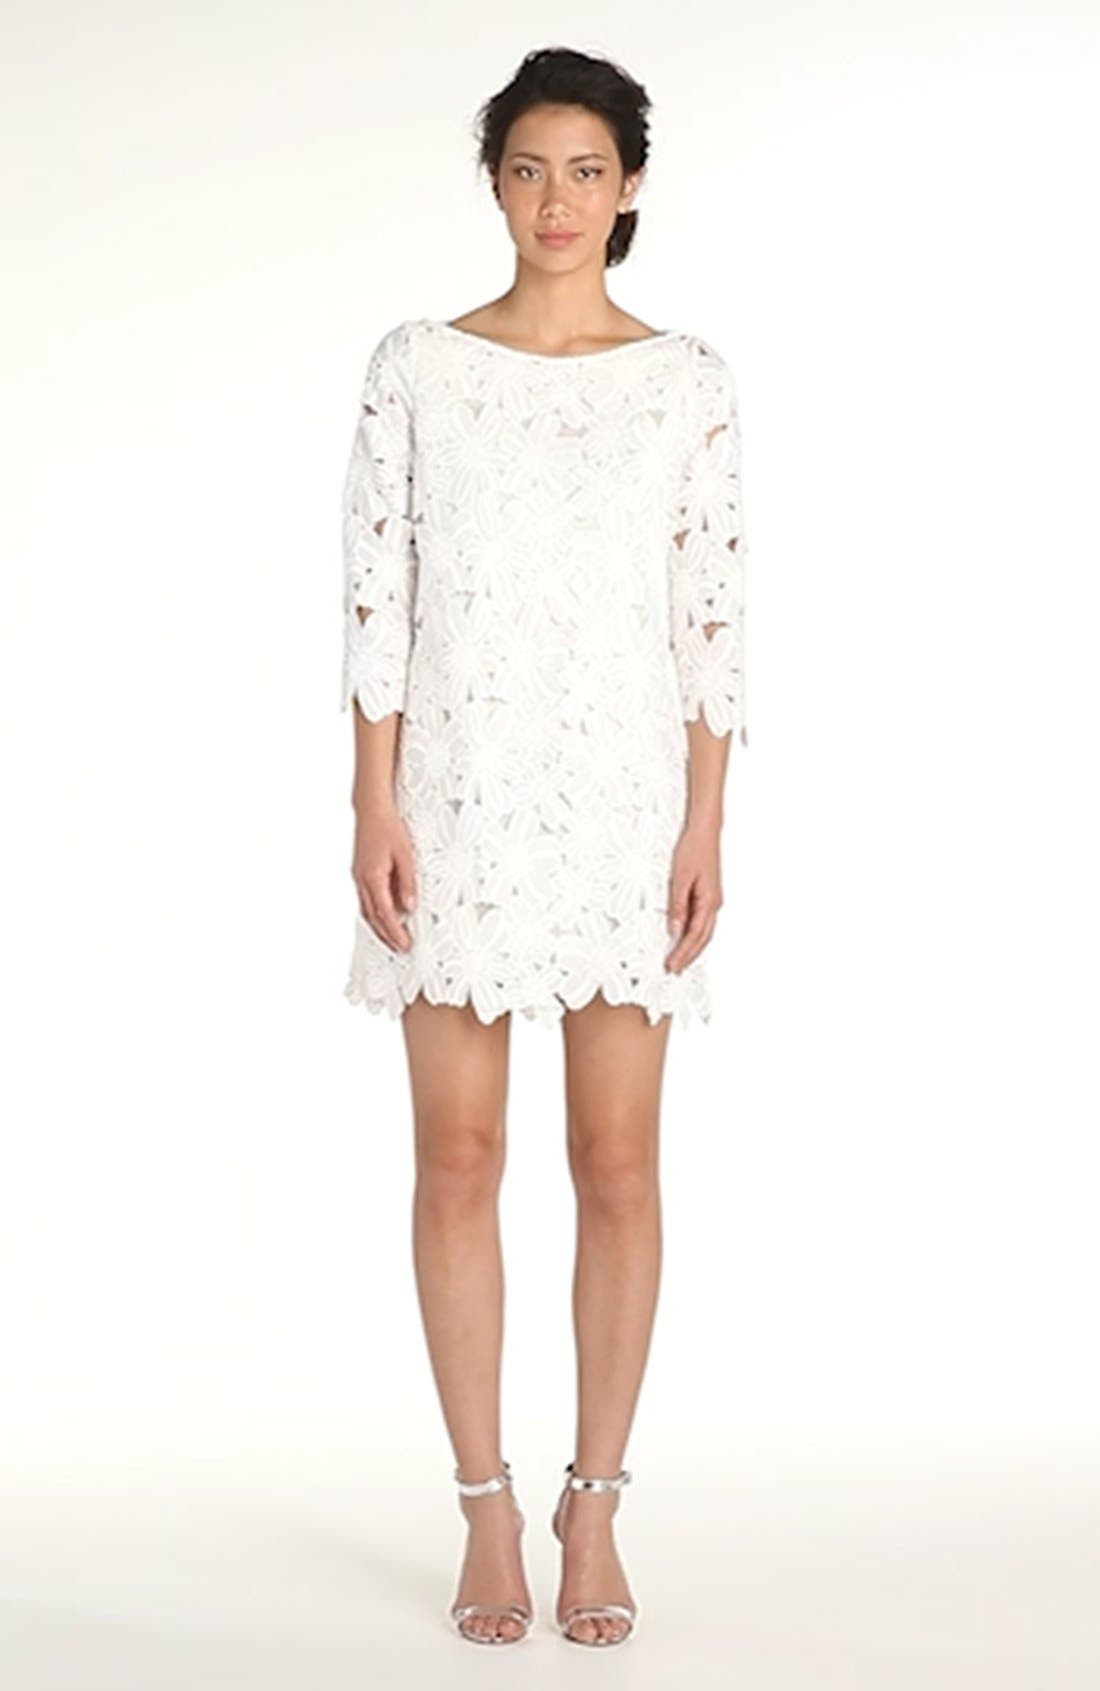 Belza Floral Lace Shift Dress,                             Alternate thumbnail 13, color,                             100